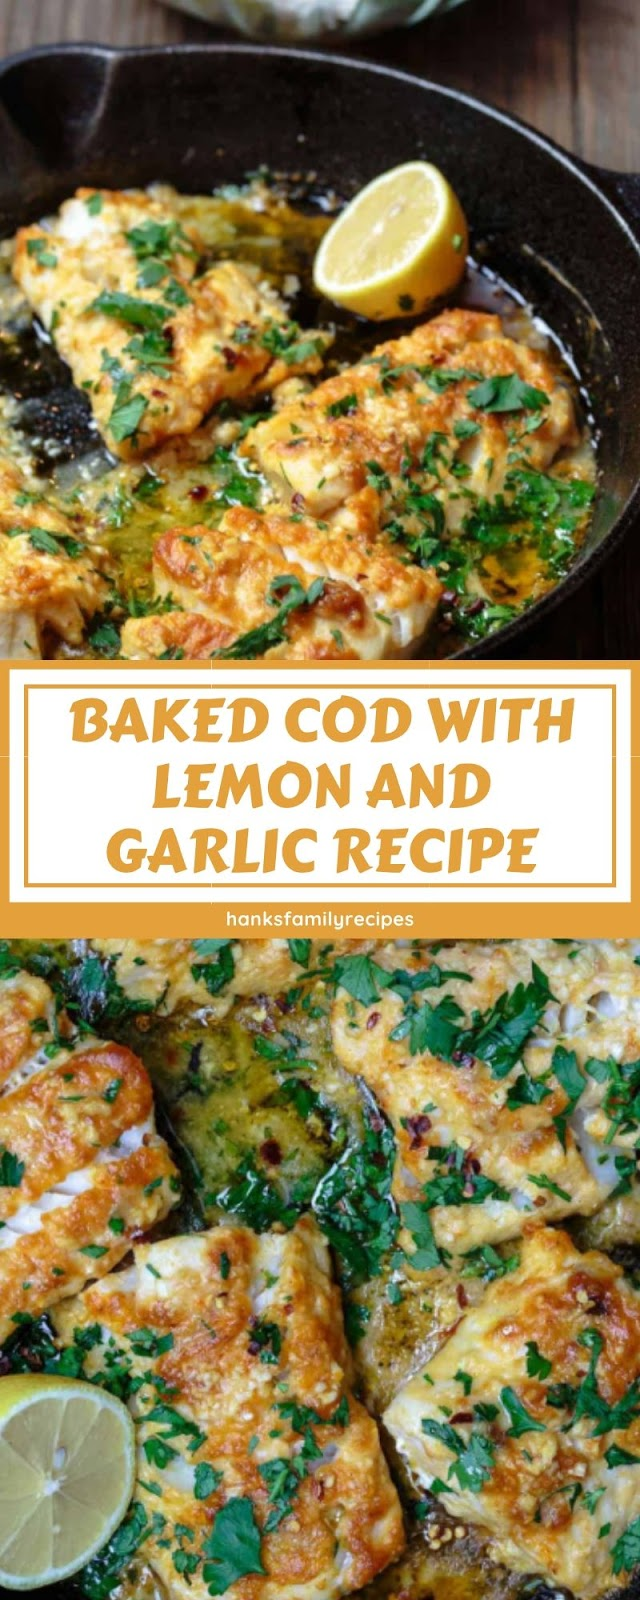 BAKED COD WITH LEMON AND GARLIC RECIPE